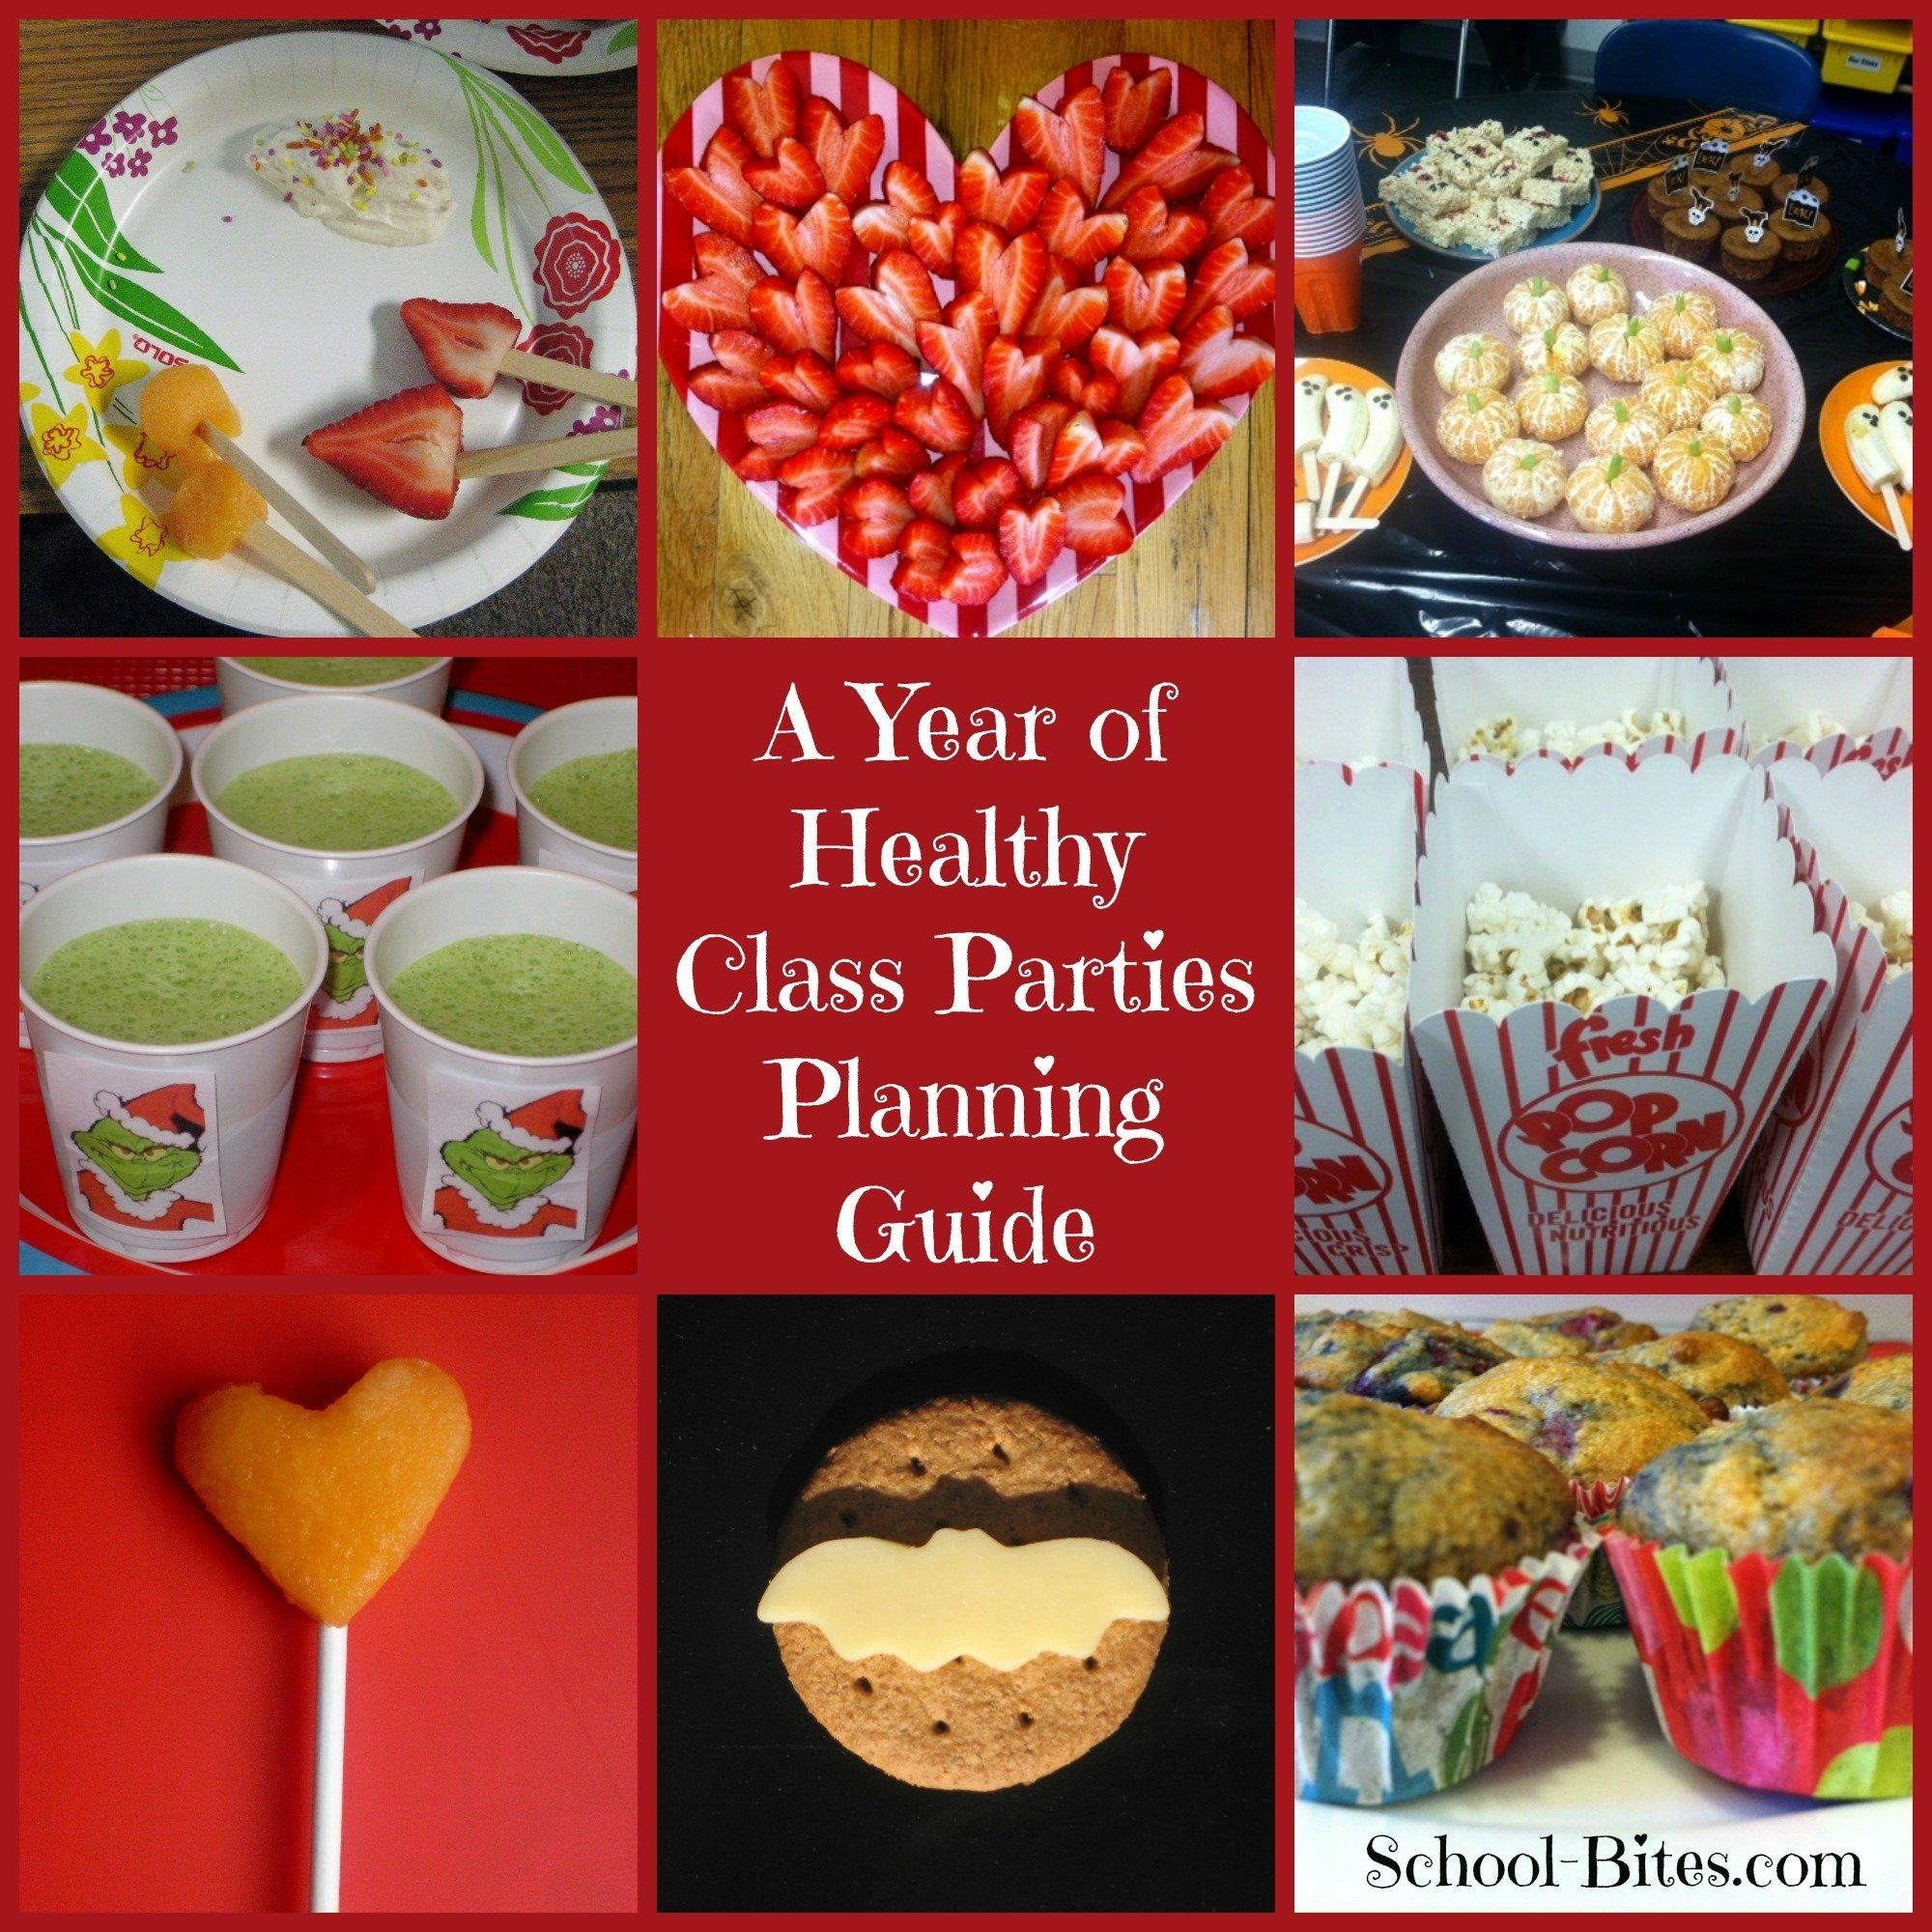 10 Attractive Snack Ideas For A Party a year of healthy class parties a planning guide for parents 1 2021